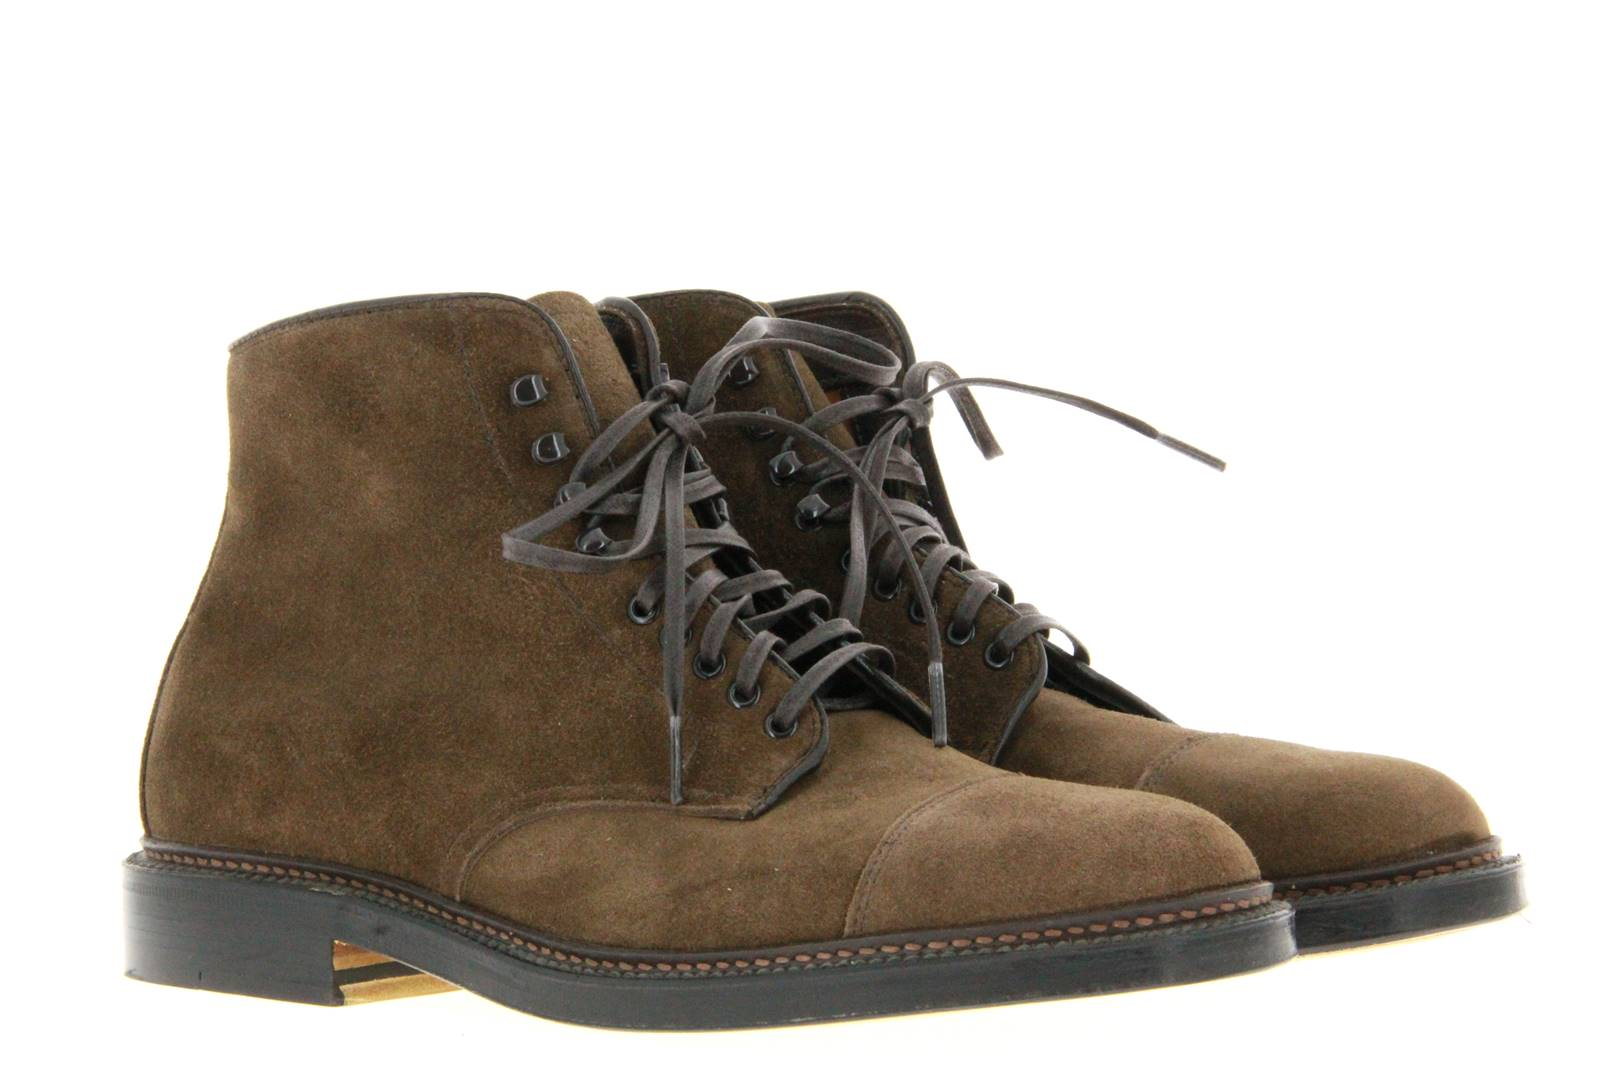 Alden lace-up ankle boots HUMUS SUEDE